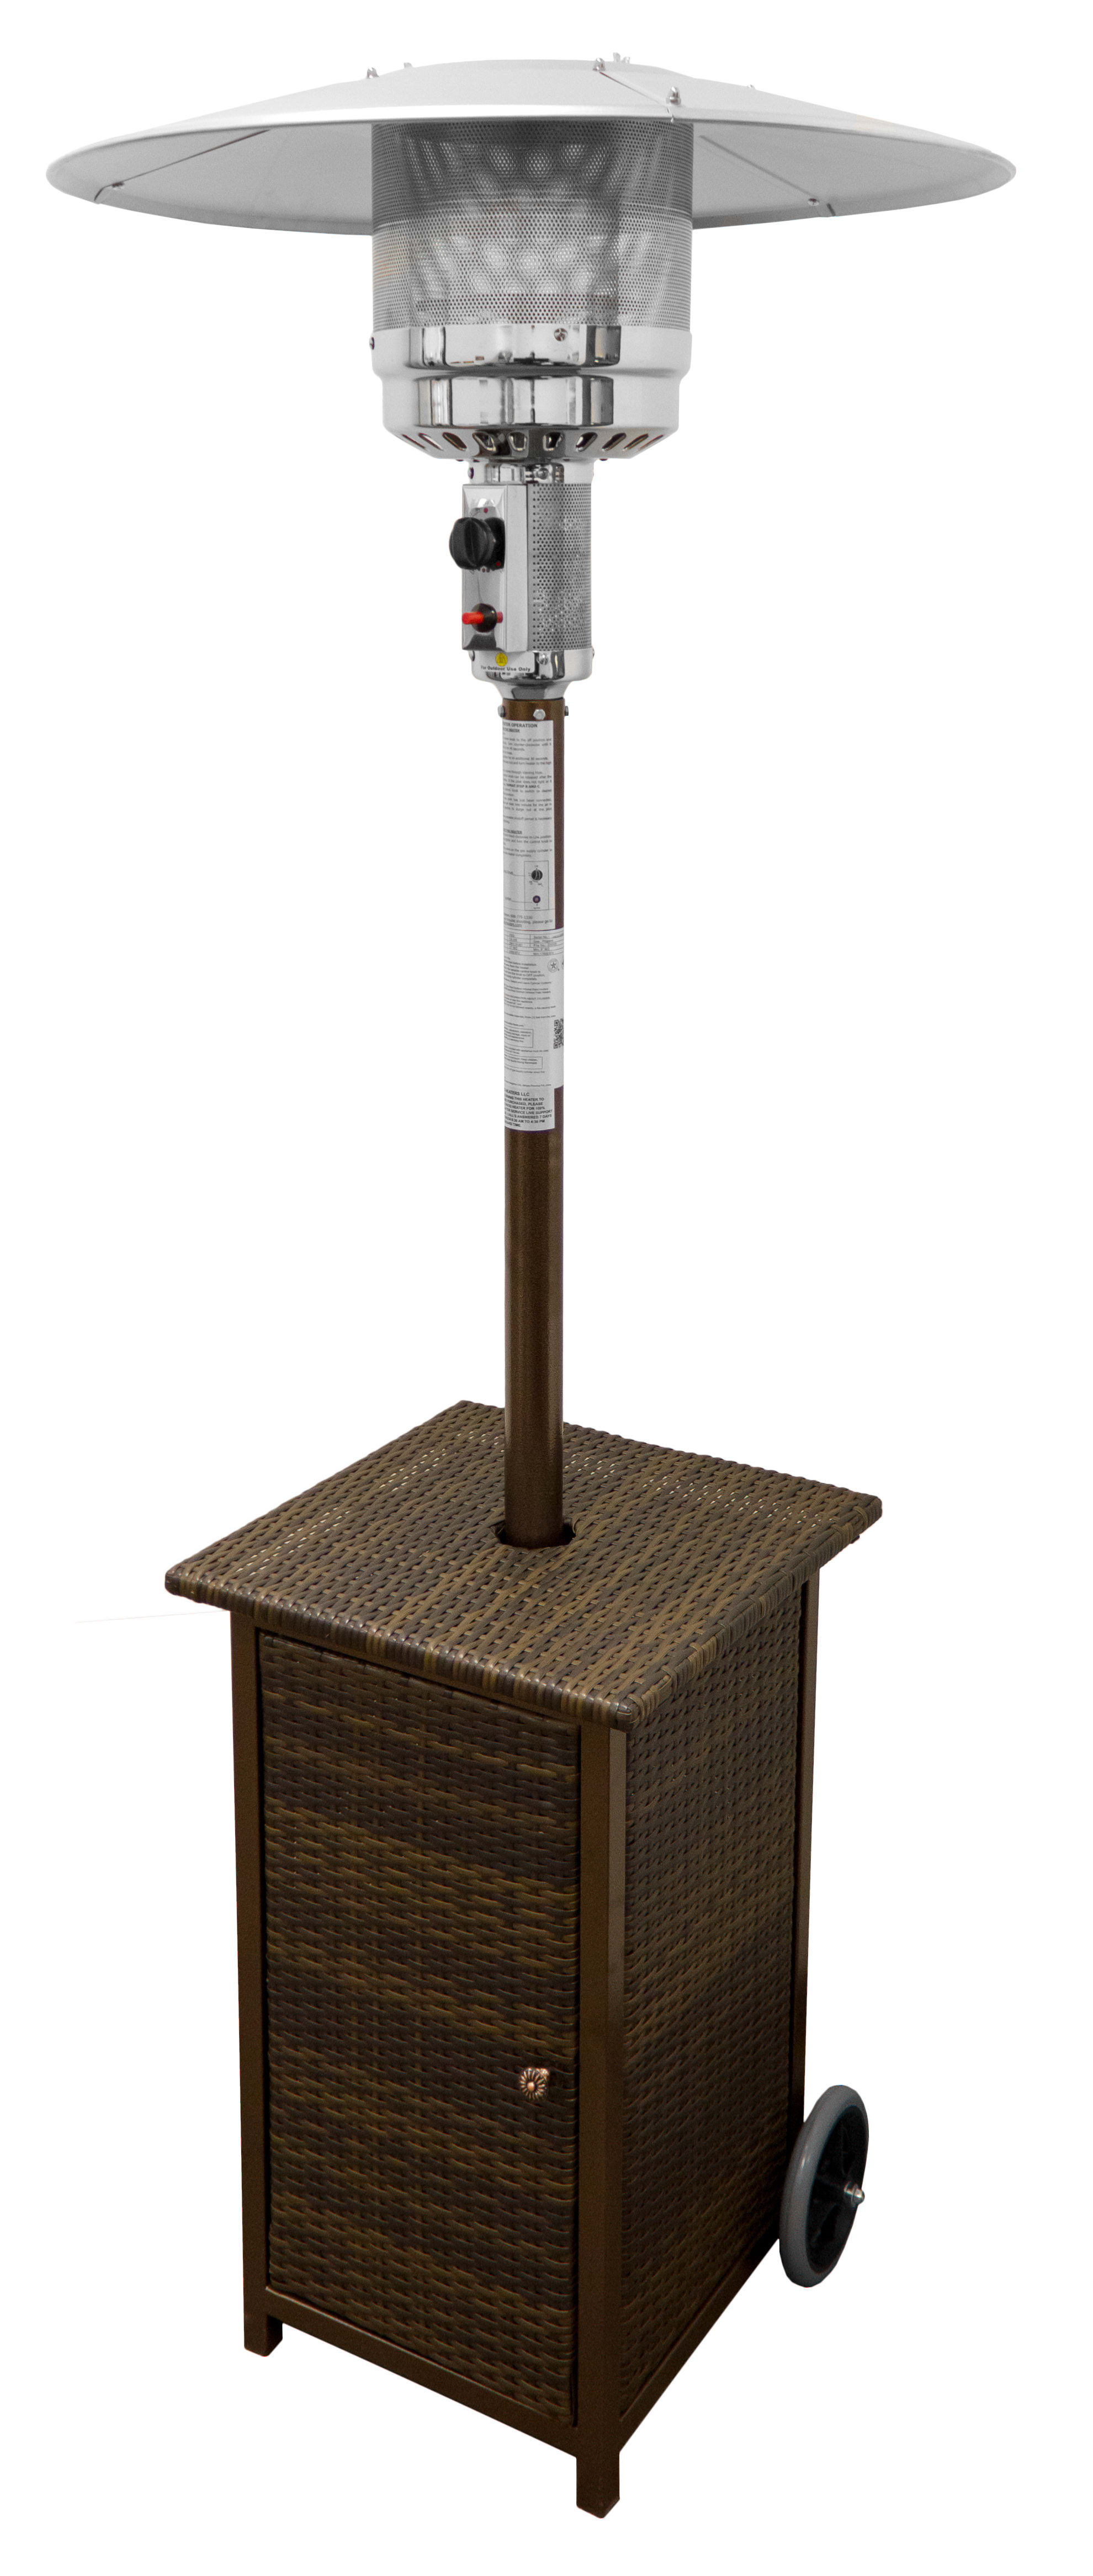 AZ Patio Heaters Heaters Outdoor Living HLDS01 WHSQ